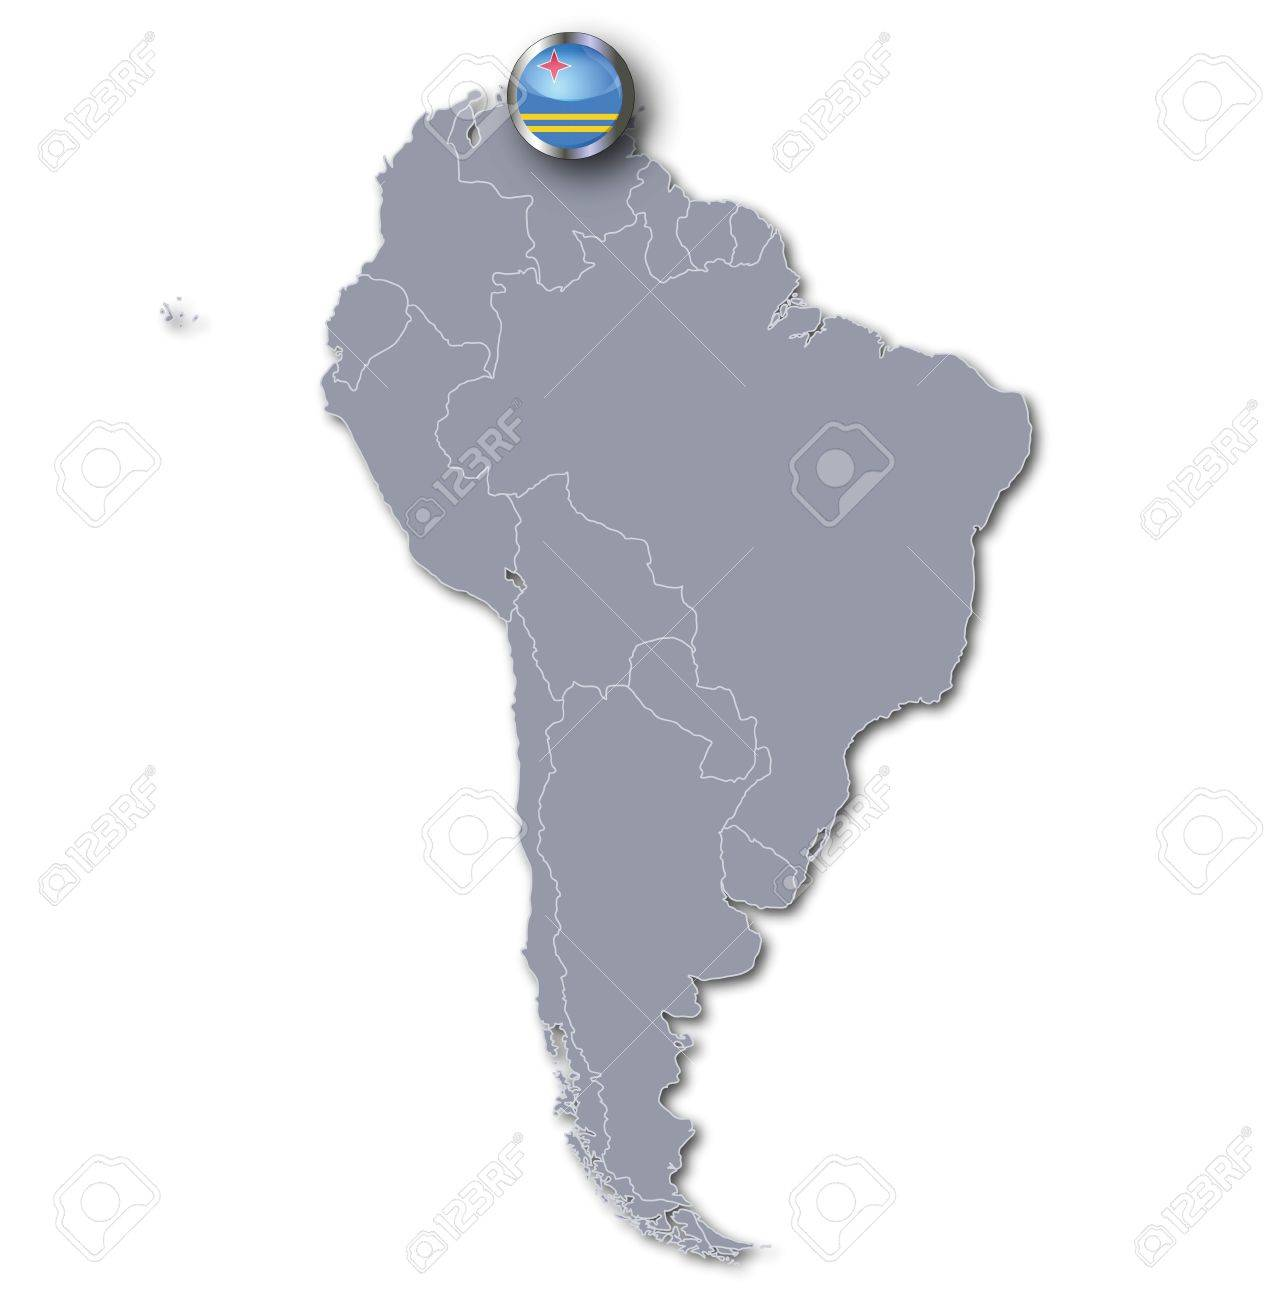 South America Map Aruba Royalty Free Cliparts Vectors And Stock